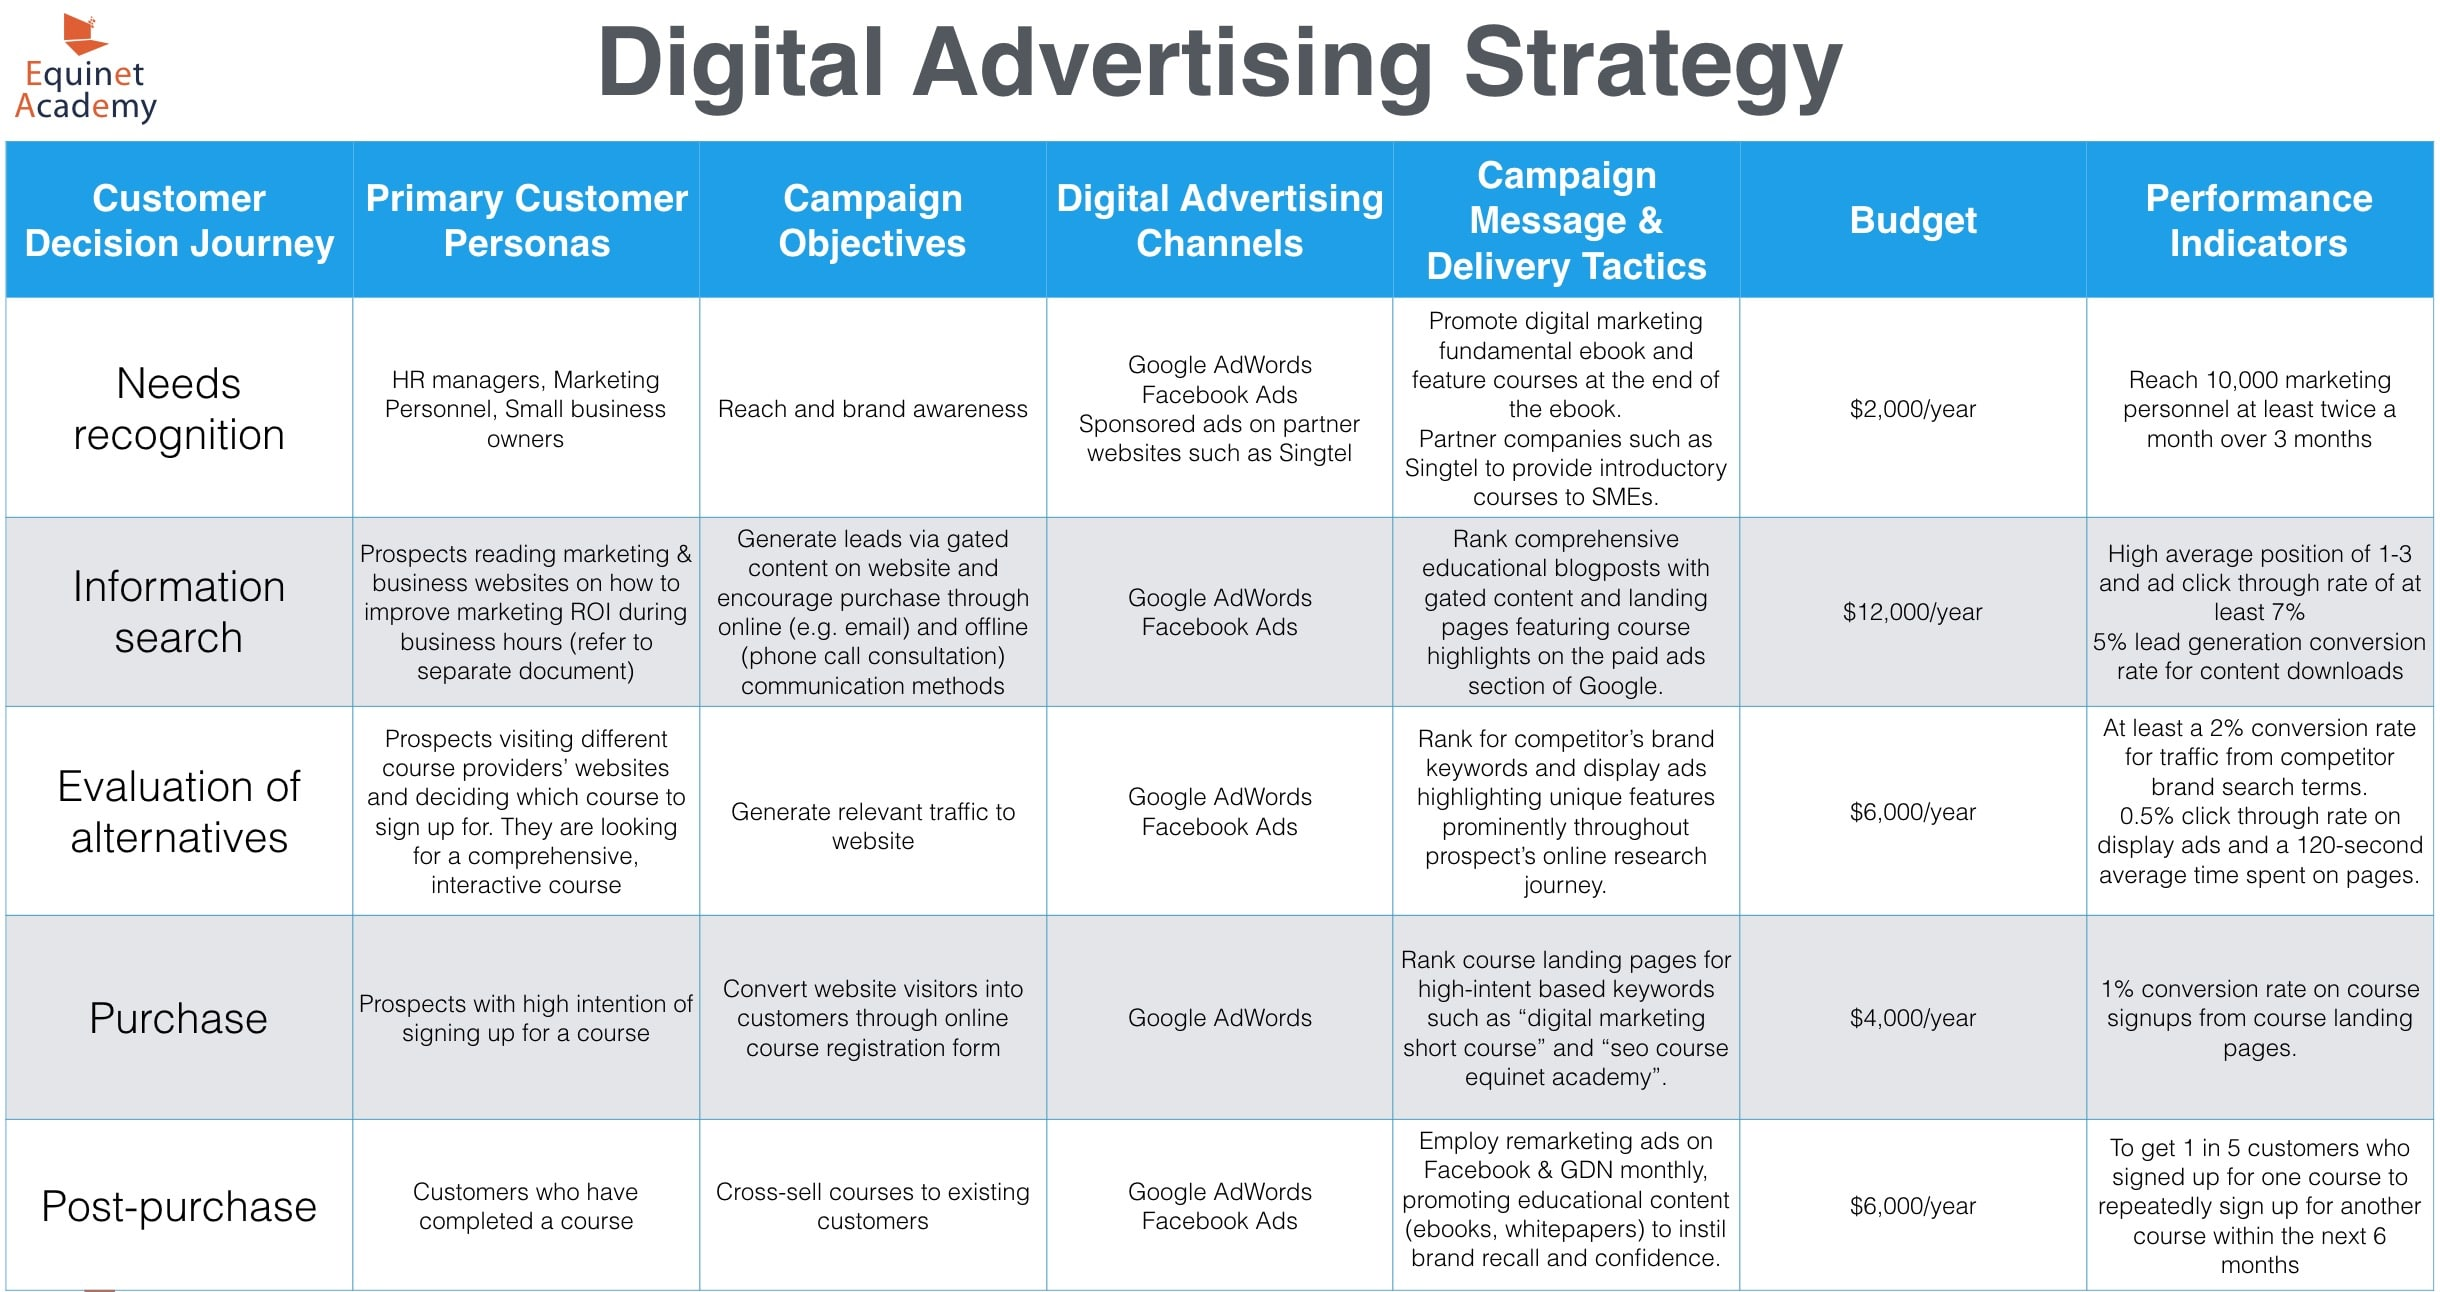 Digital Advertising Strategy Table